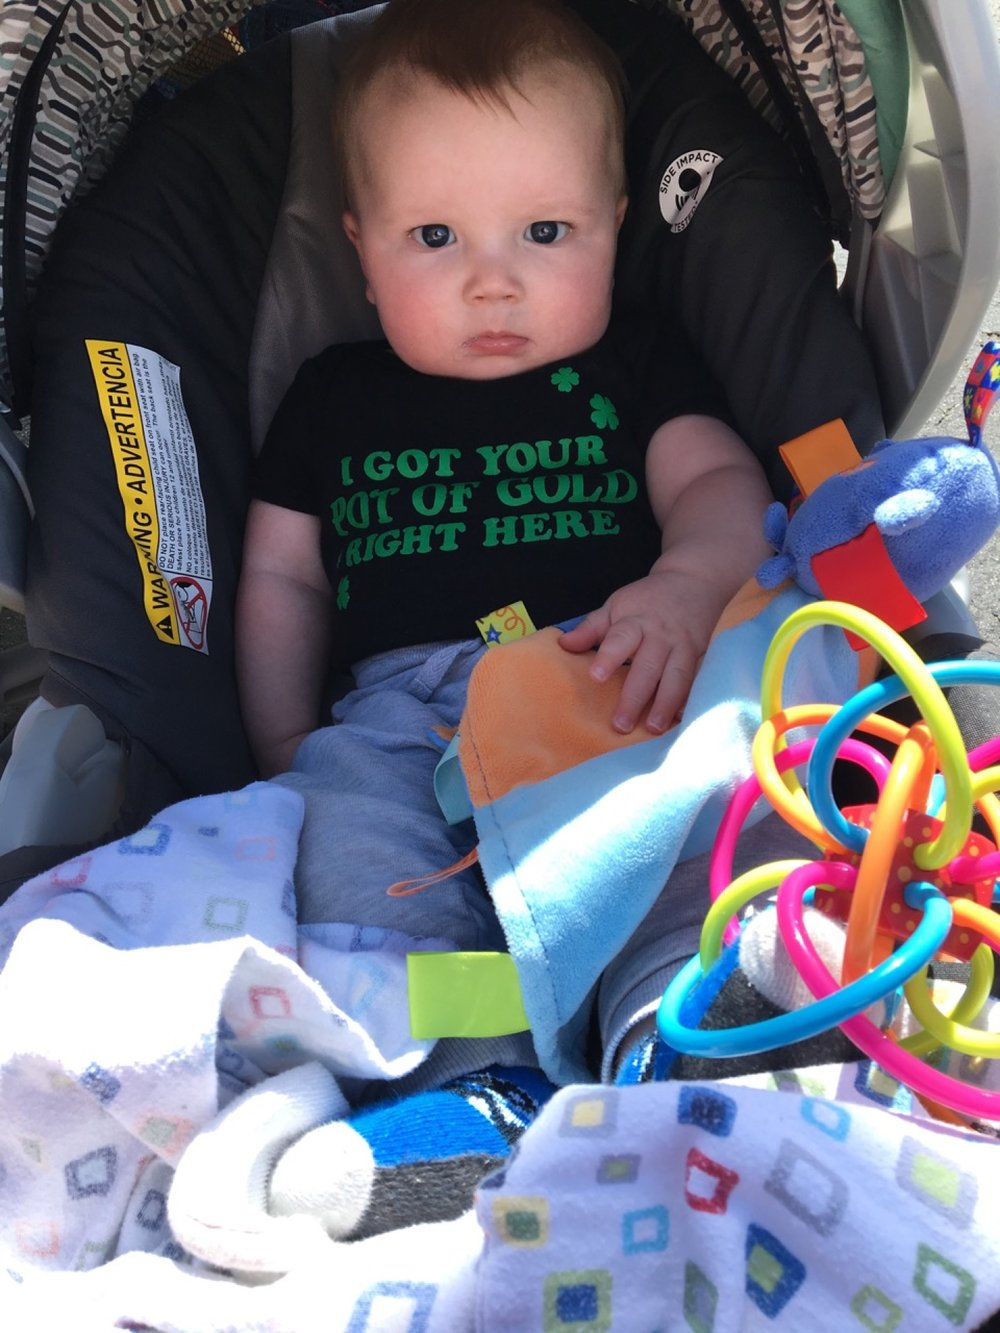 Mean mugging on Saint Patrick's Day